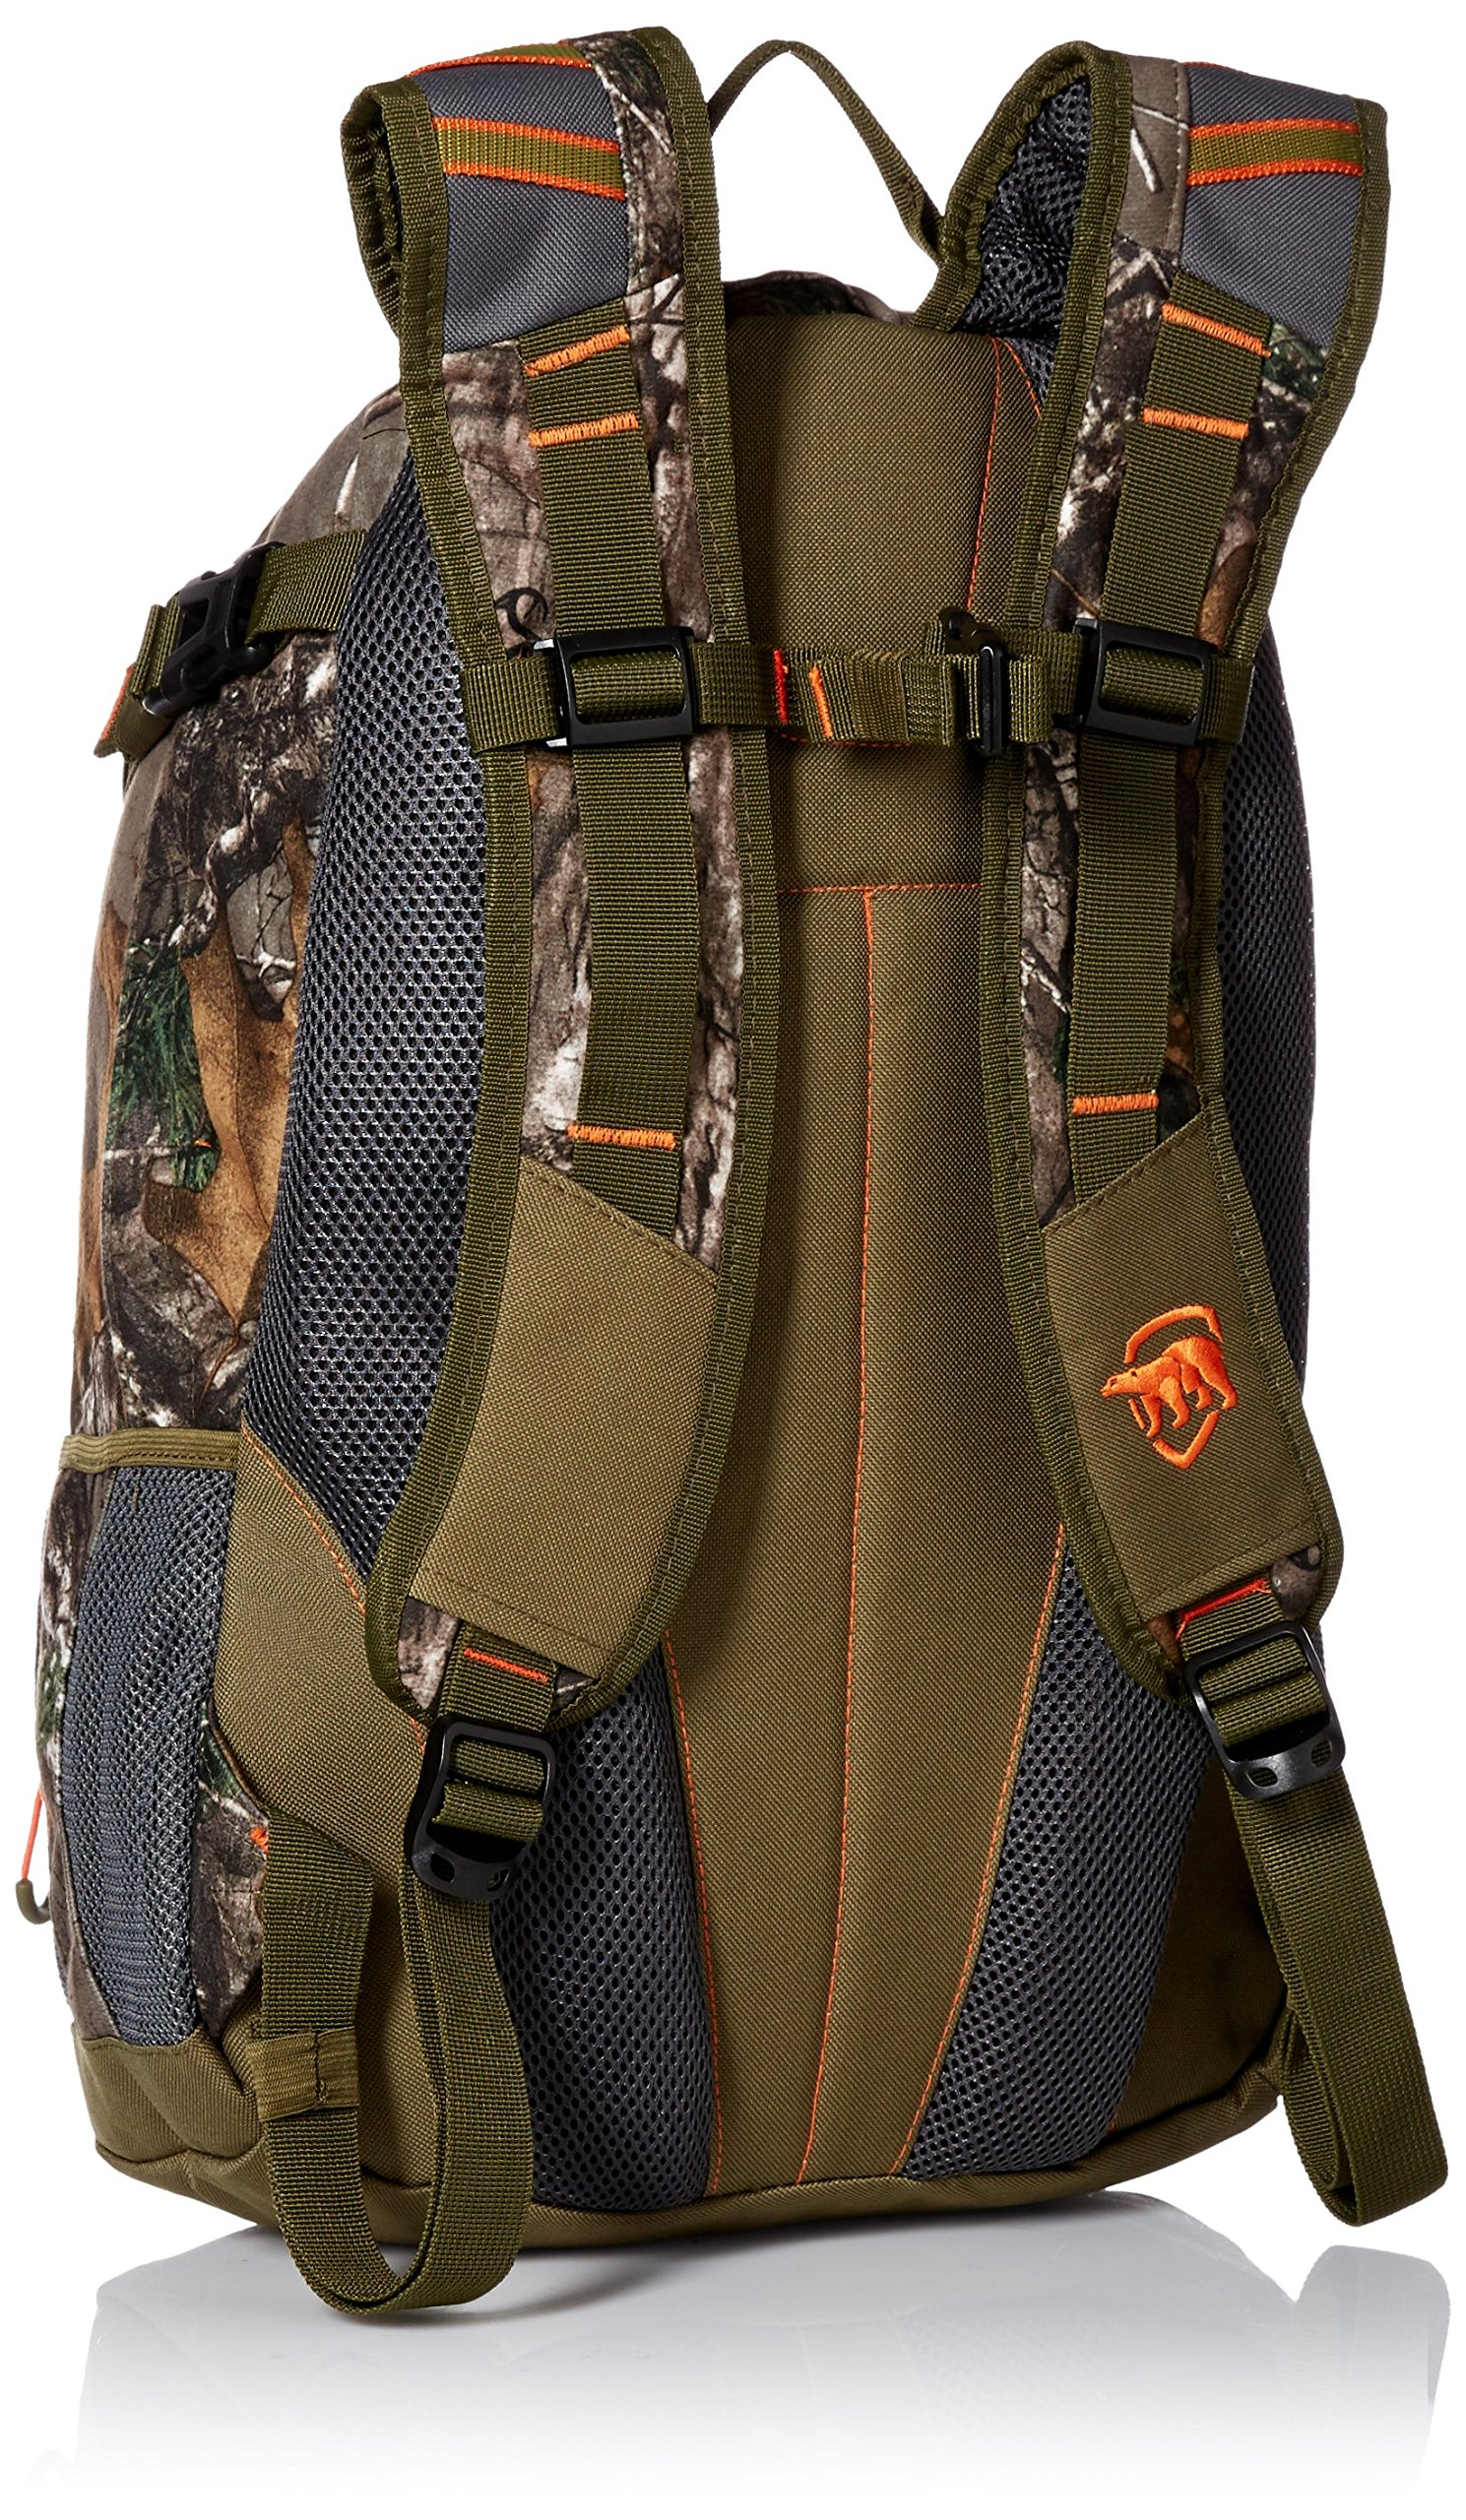 Onyx 561300-802-999-15 Outdoor T3X Realtree Xtra Backpack, Realtree Xtra by Onyx (Image #2)